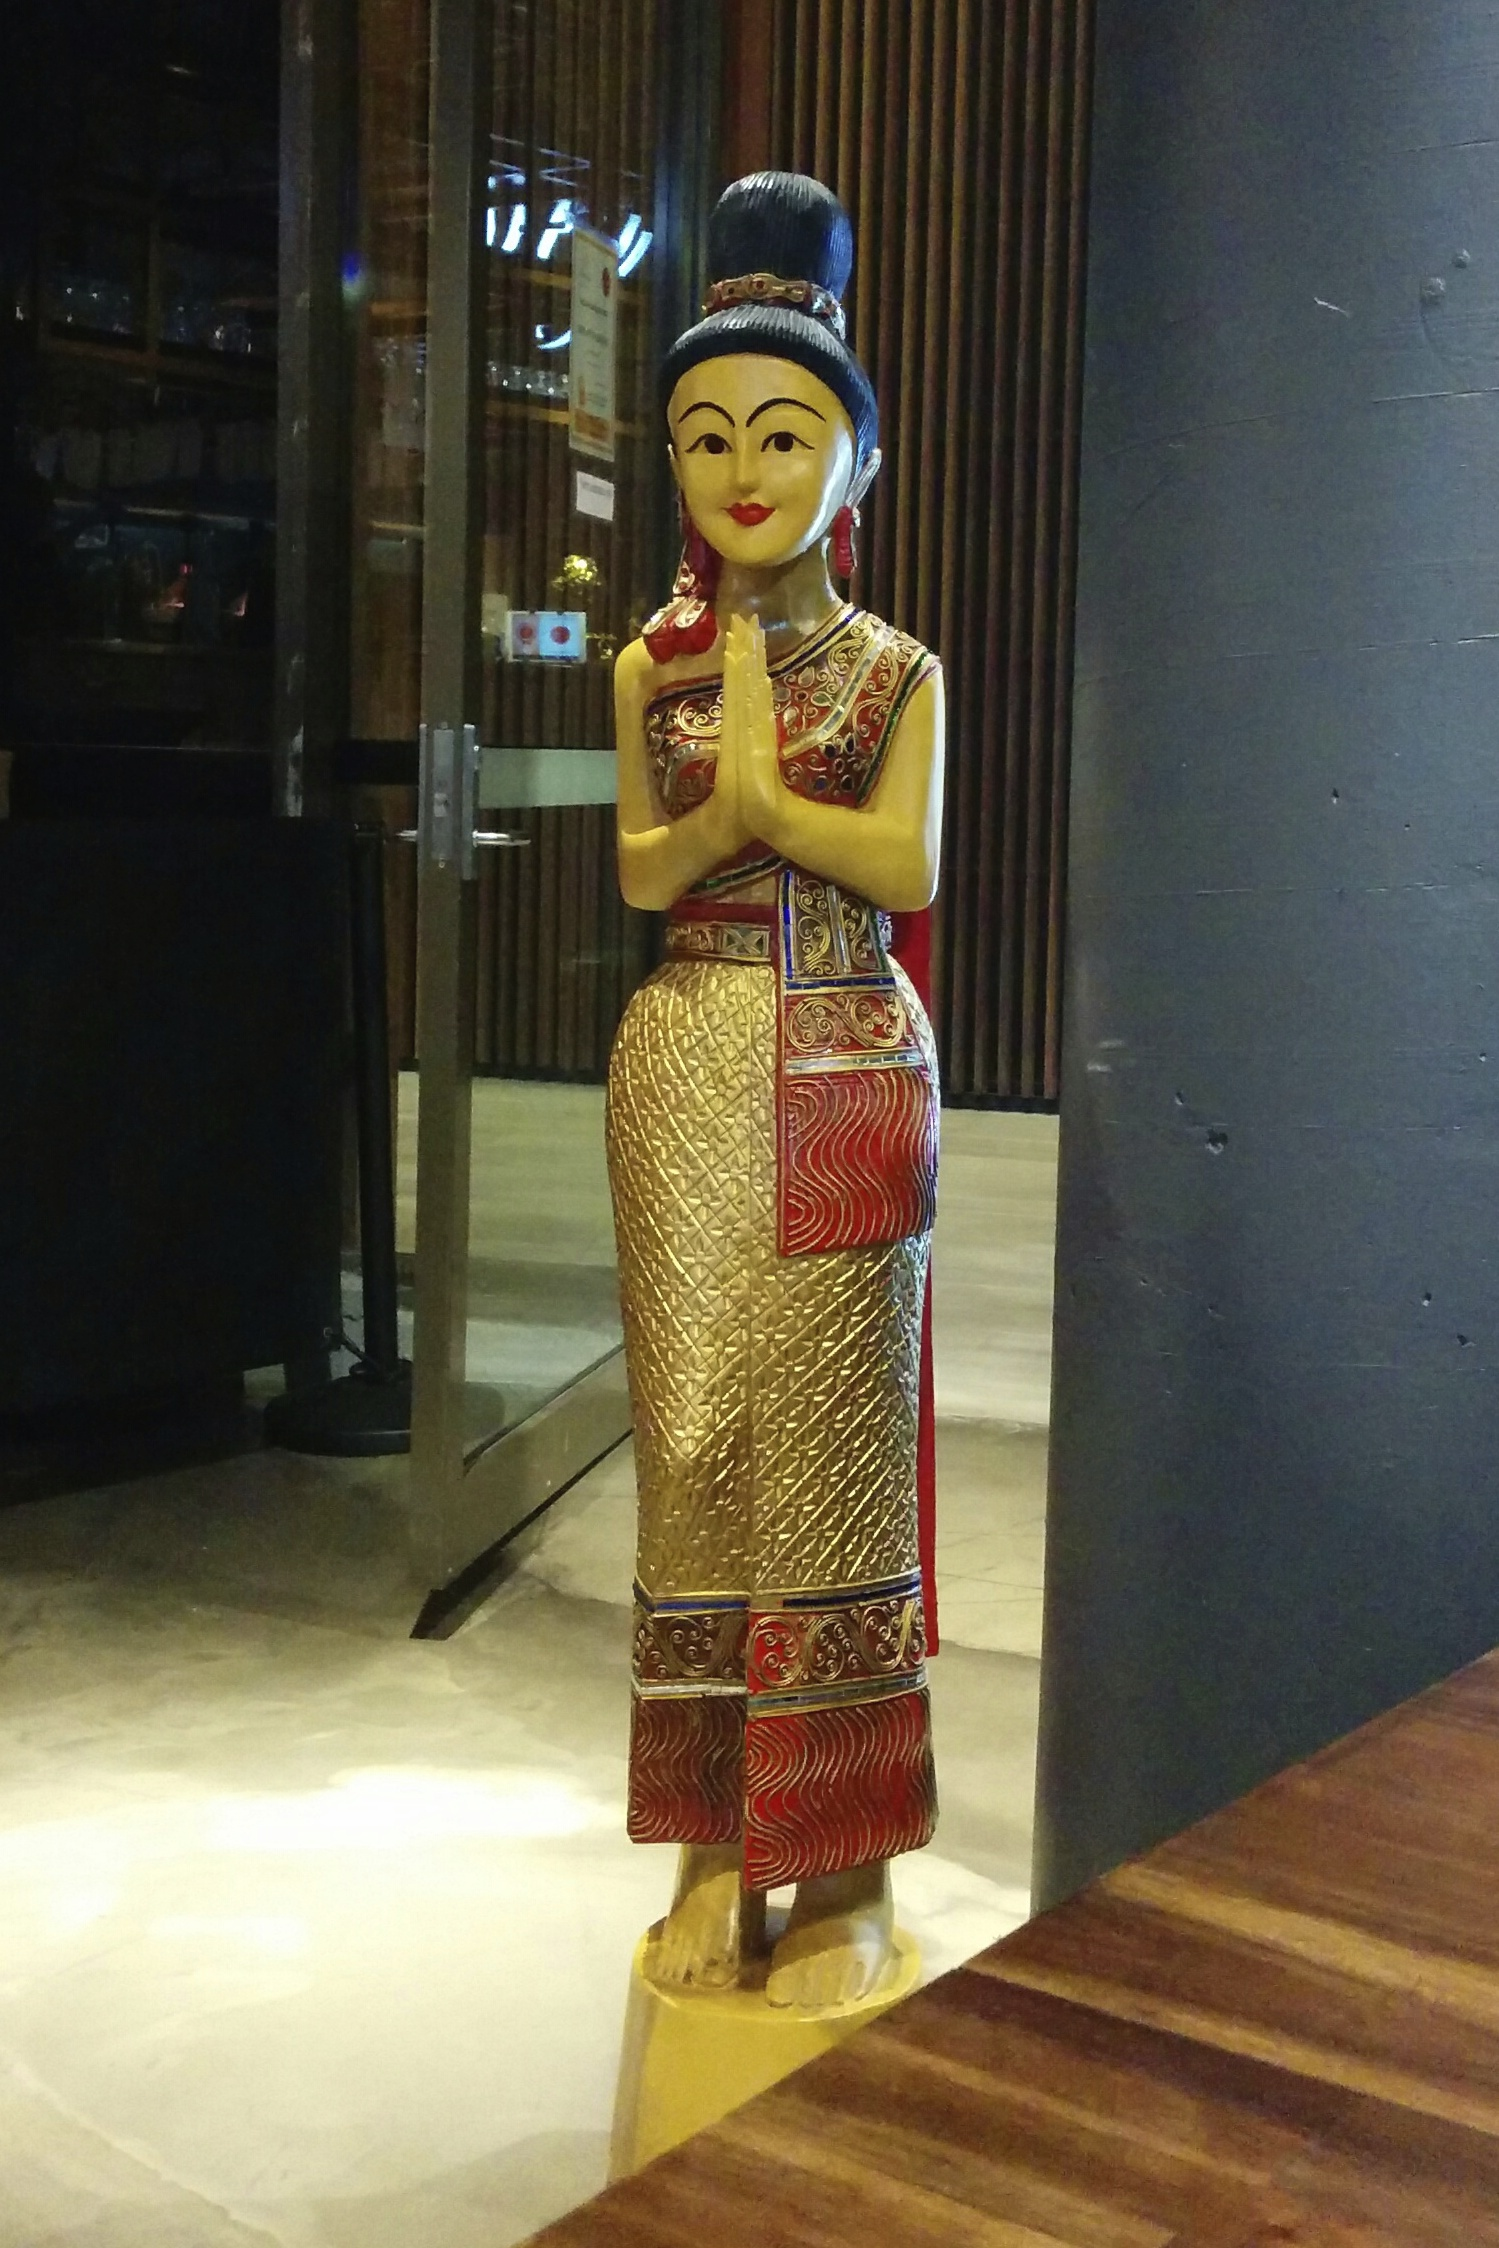 Otg Thai Restaurant Bar Sydney